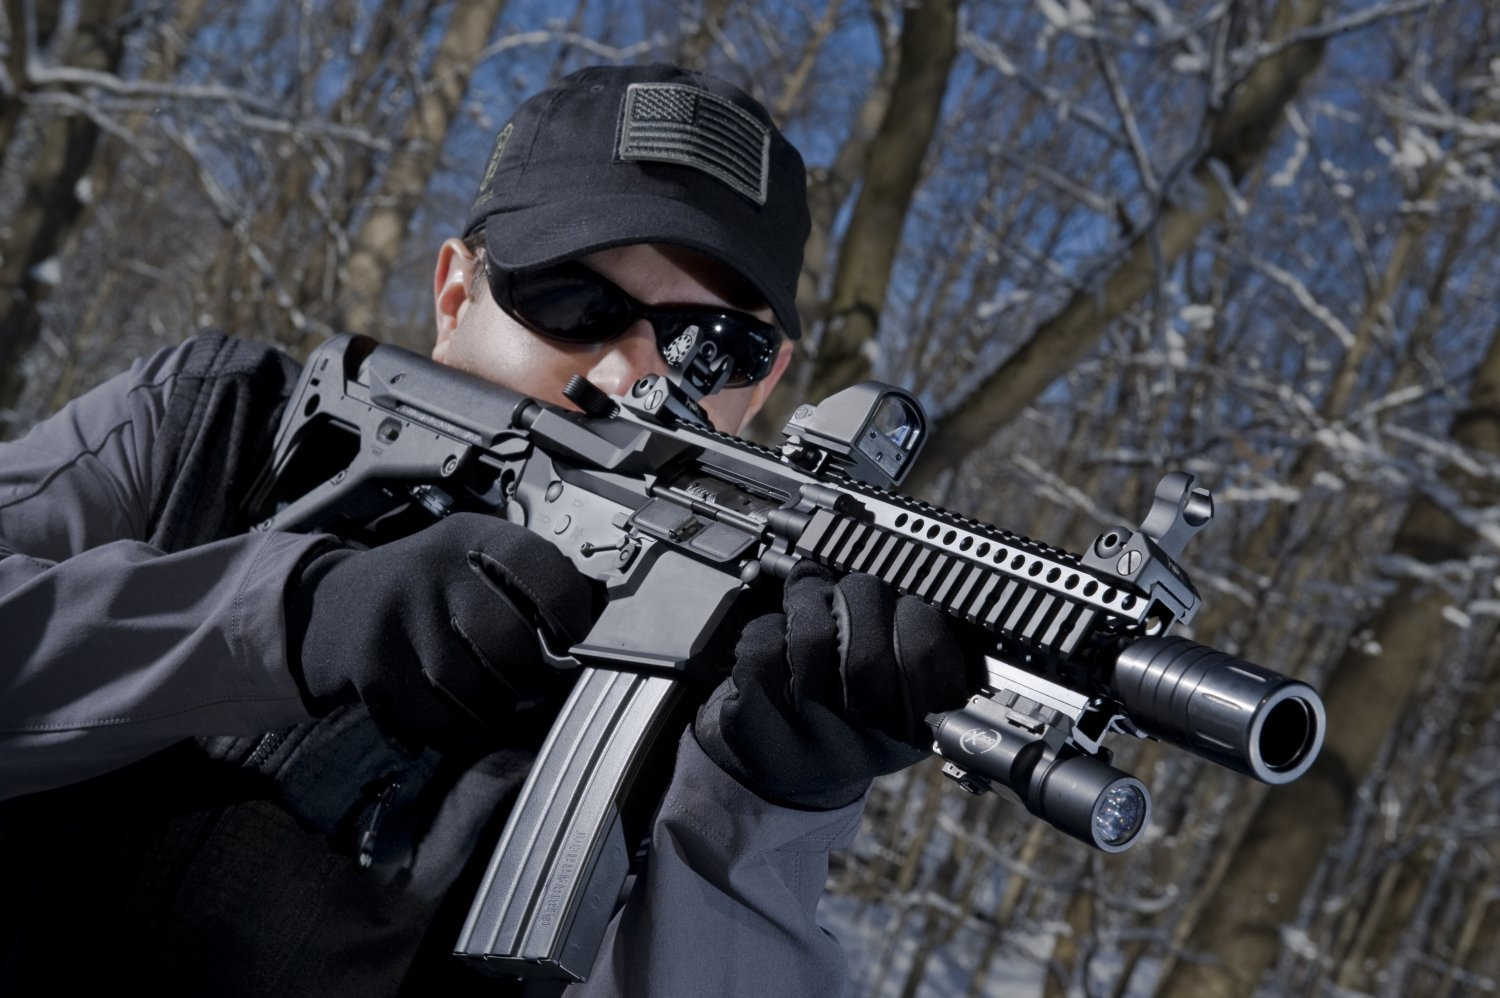 Spikes Tactical Biohazard EDW 7.5 inch 6.8 SPC Tactical AR SBR 3 small <!  :en  >Spikes Tactical Biohazard EDW (Enhanced Defensive Weapon) 6.8 SPC (6.8x43mm SPC) Tactical 7.5 AR SBR (Short Barreled Rifle) with Billet Receivers and S.T.A.B. Muzzle Device<!  :  >